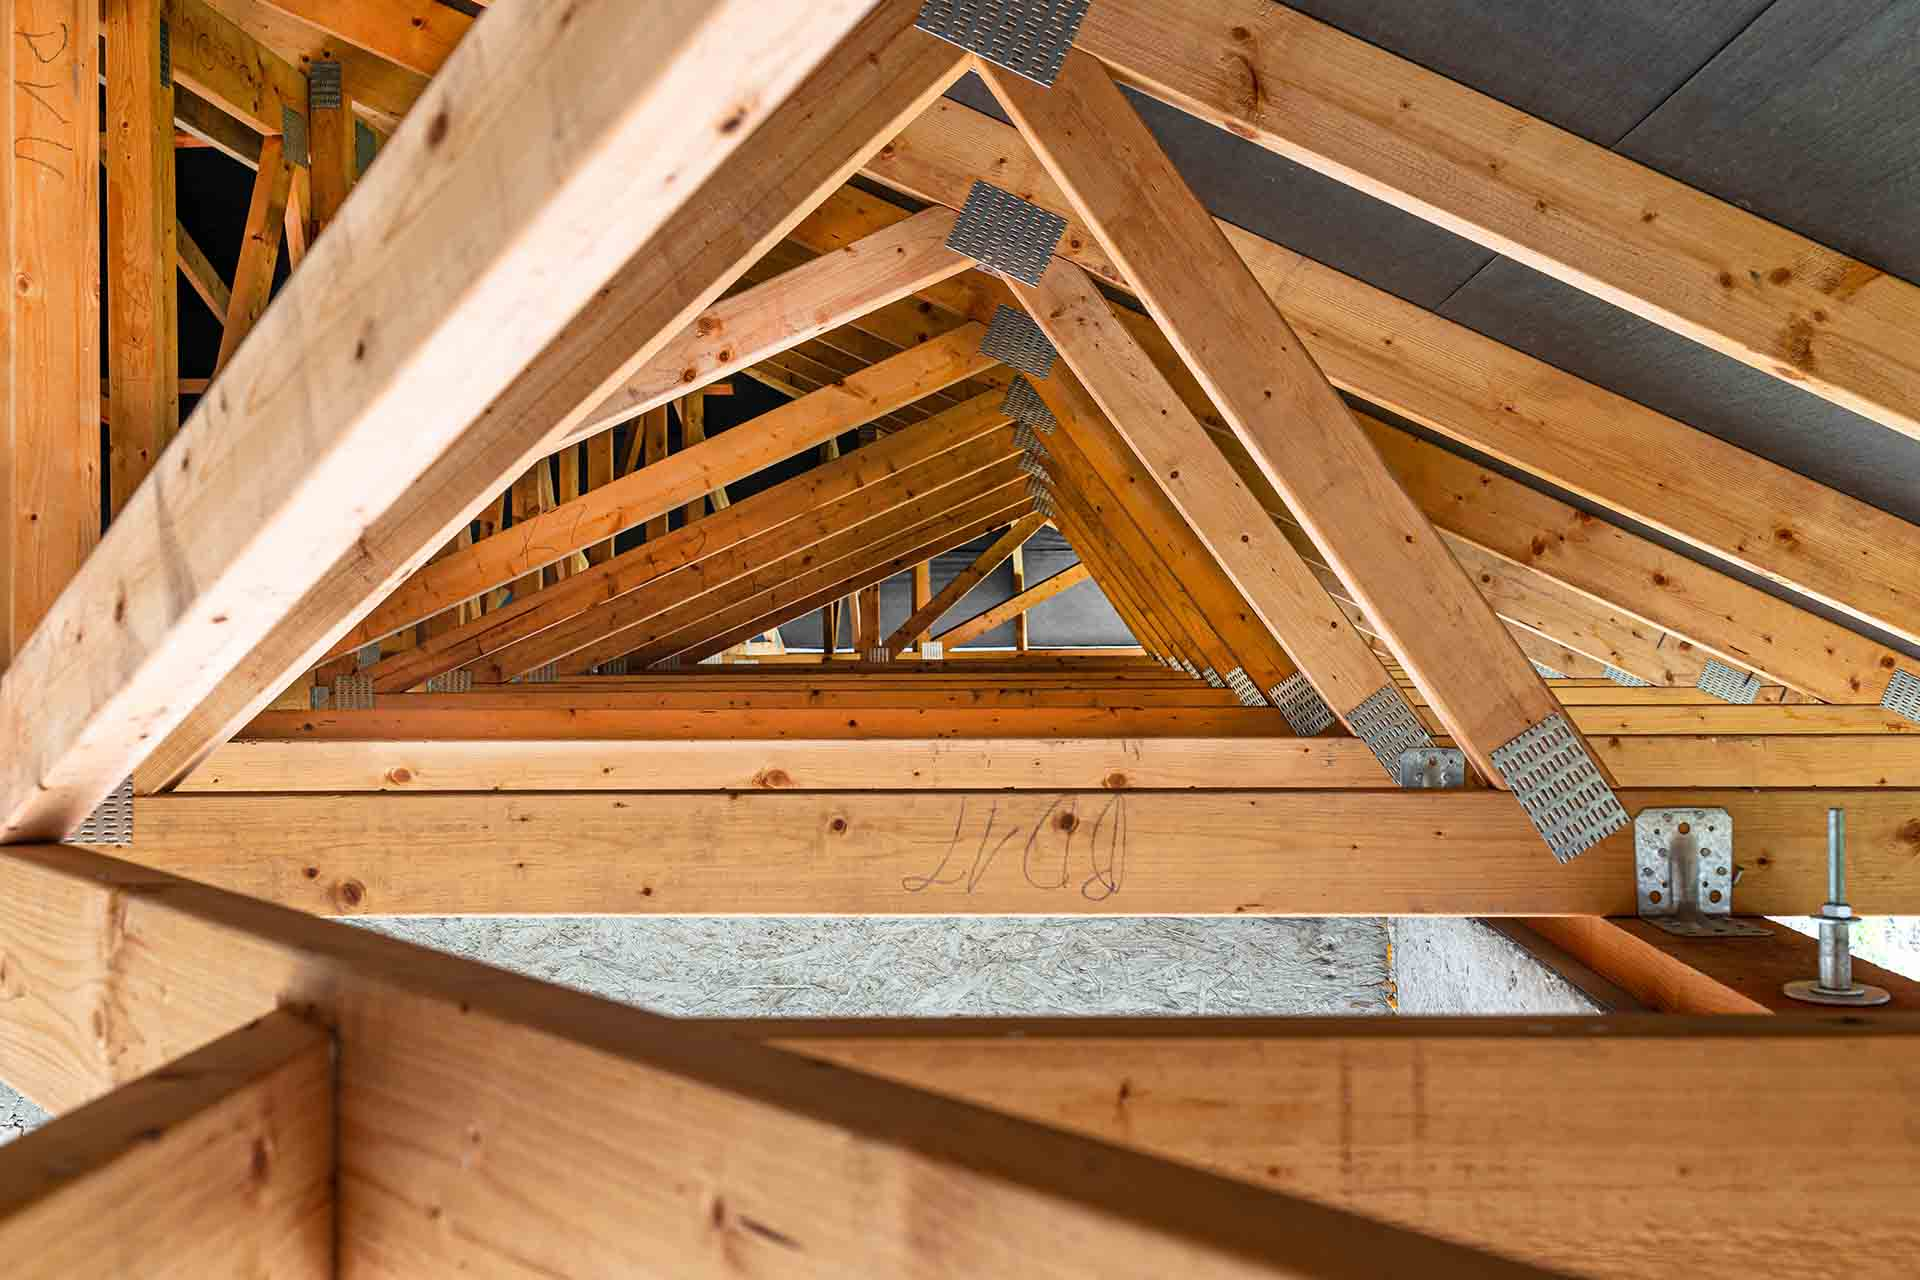 How do you know if your roofer has done a good job?